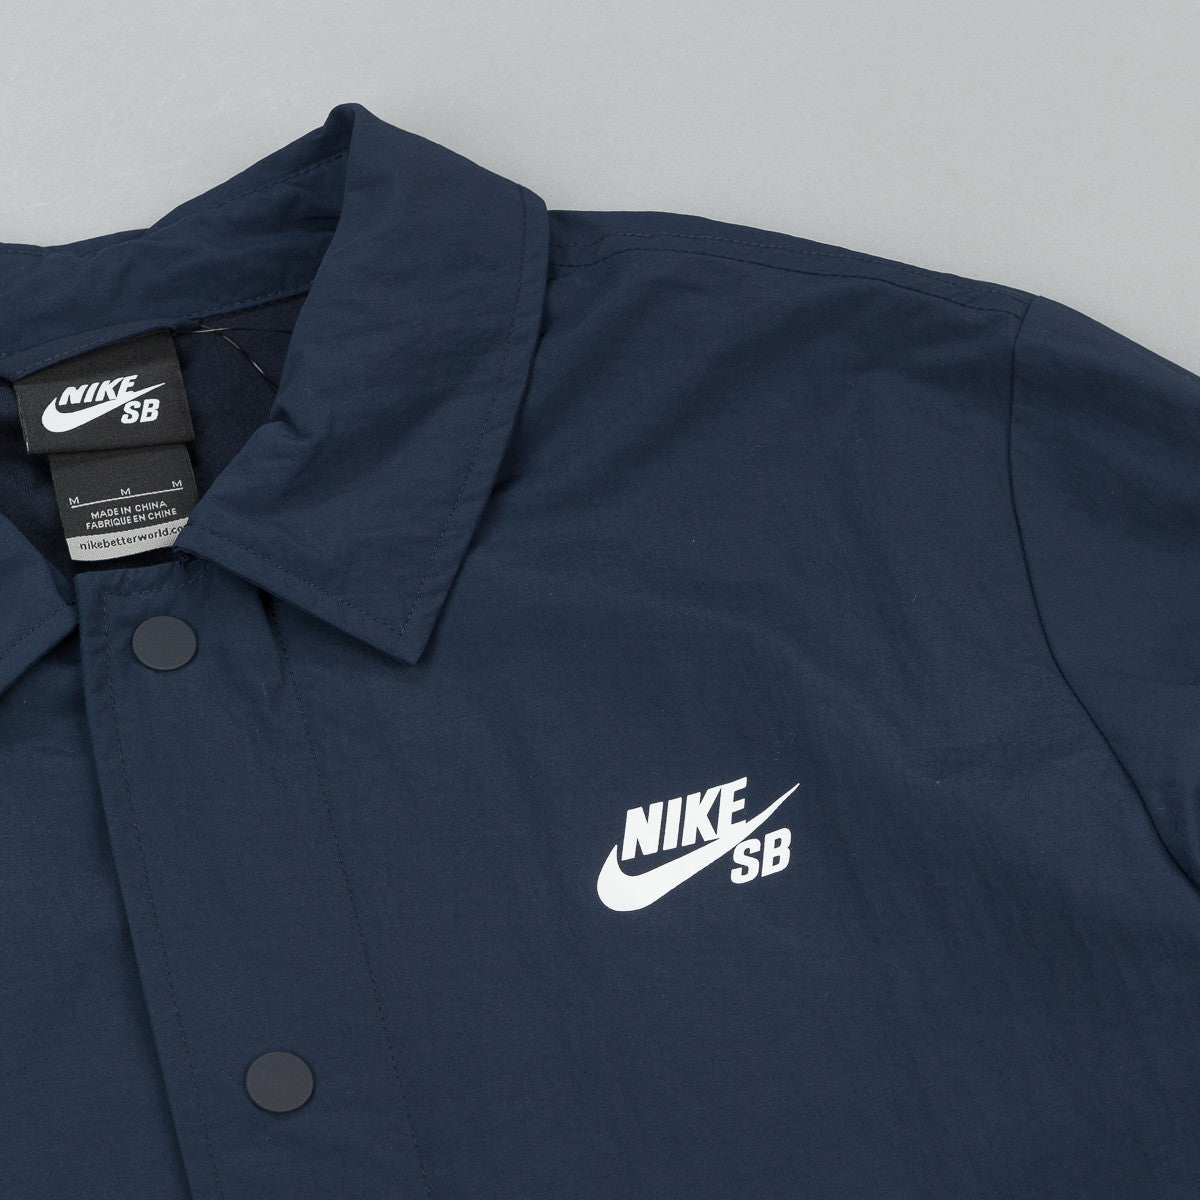 Nike SB Coaches Jacket - Dark Obsidian / White